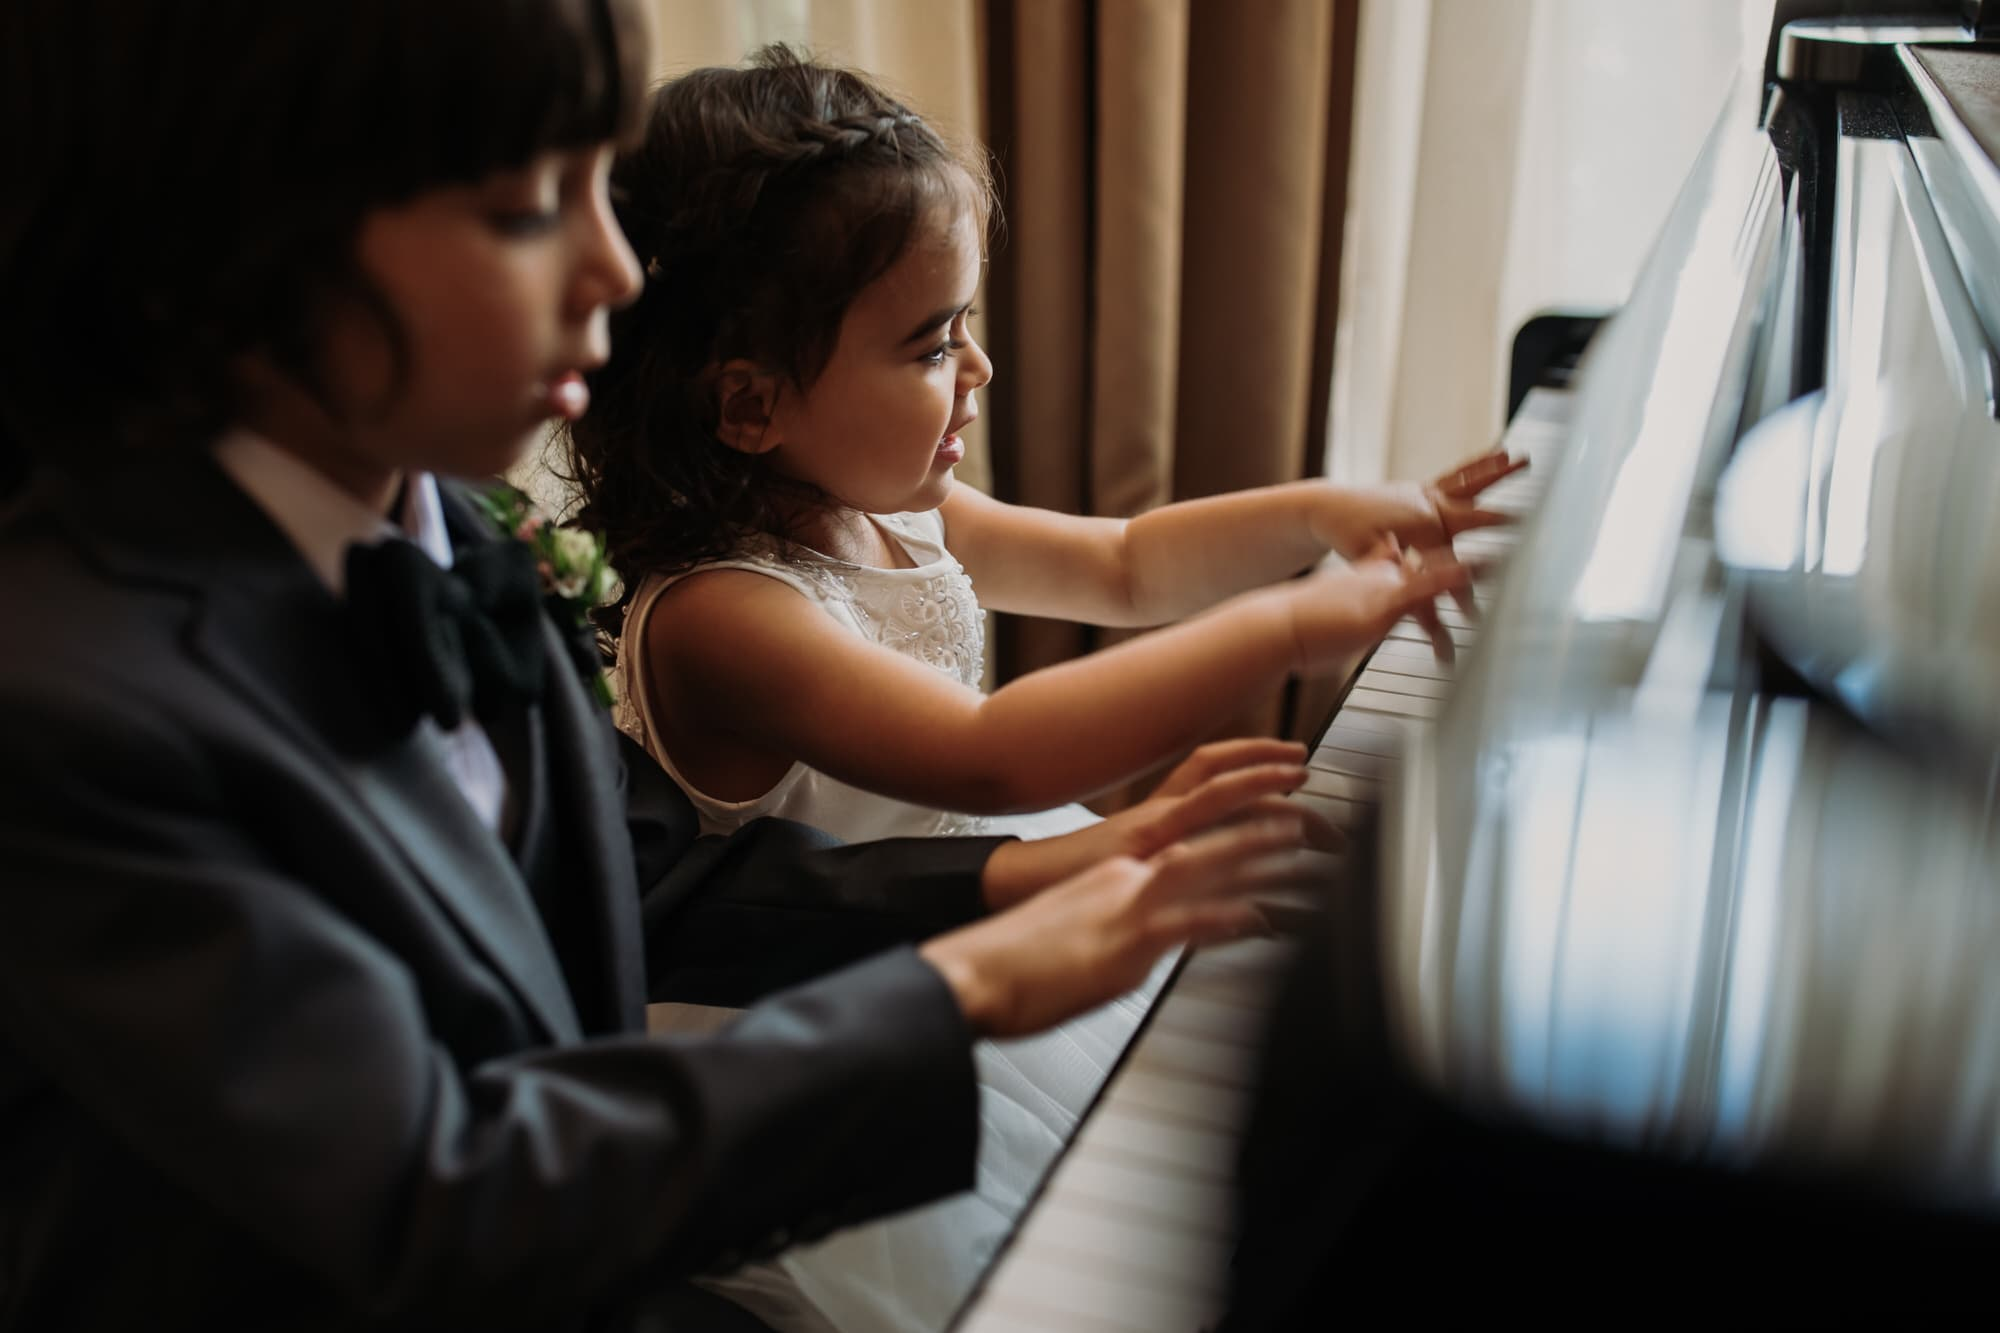 Entrepots Dominion Wedding In Montreal - Children playing piano - Wedding Photographer Brent Calis